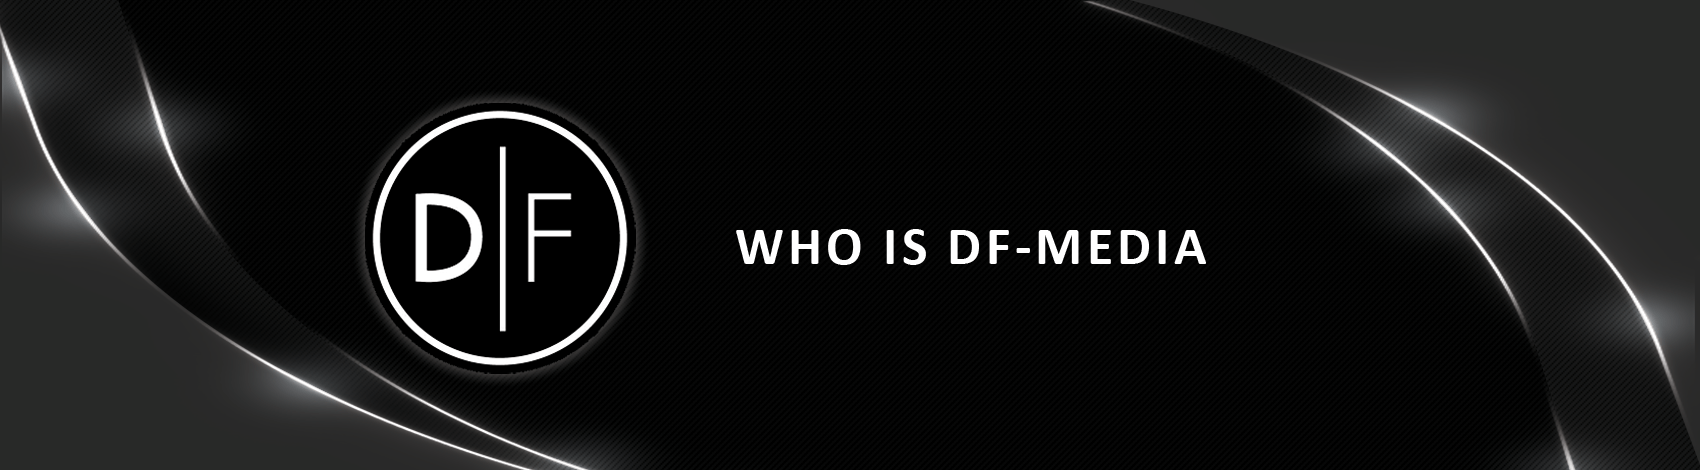 Who Is DF-Media